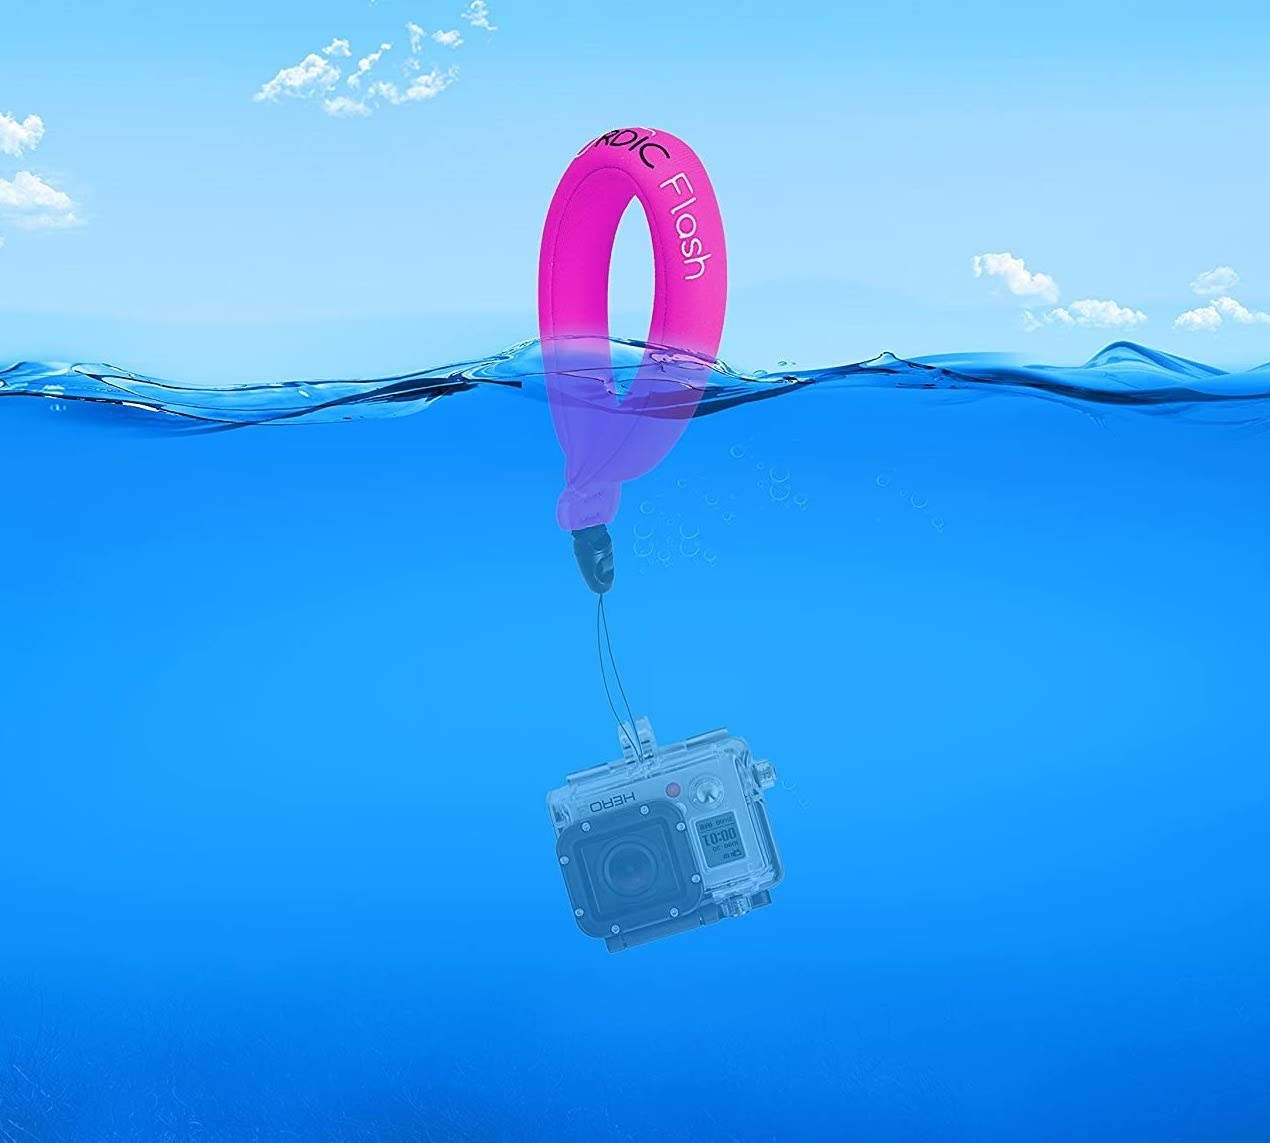 The strap is floating above water while the attached camera is seen beneath the surface